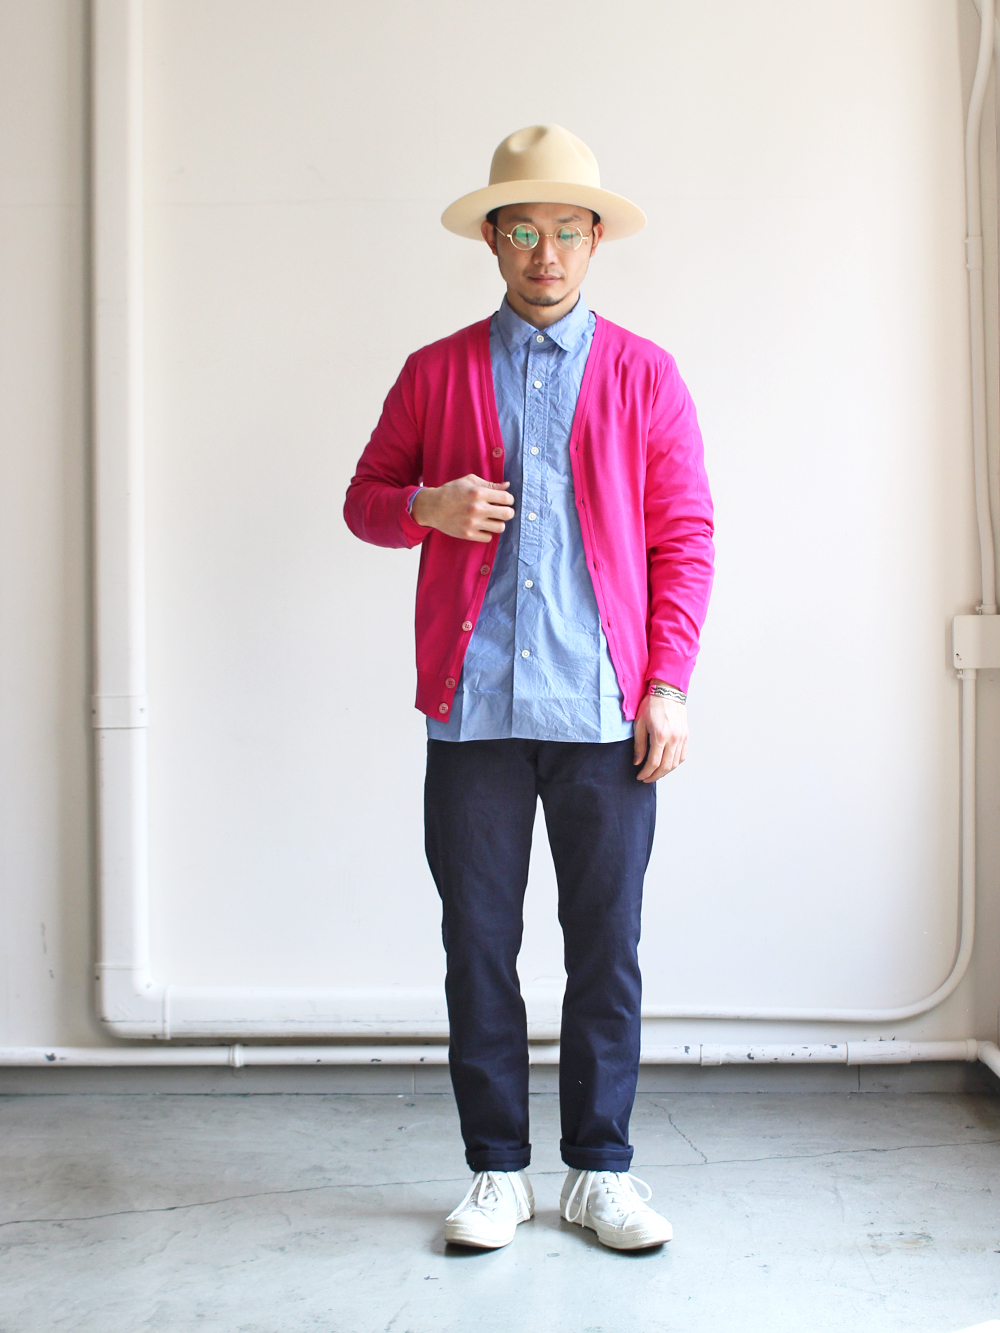 maillot b.label Change Collar Shirt (チェンジカラーシャツ) MAS-16255